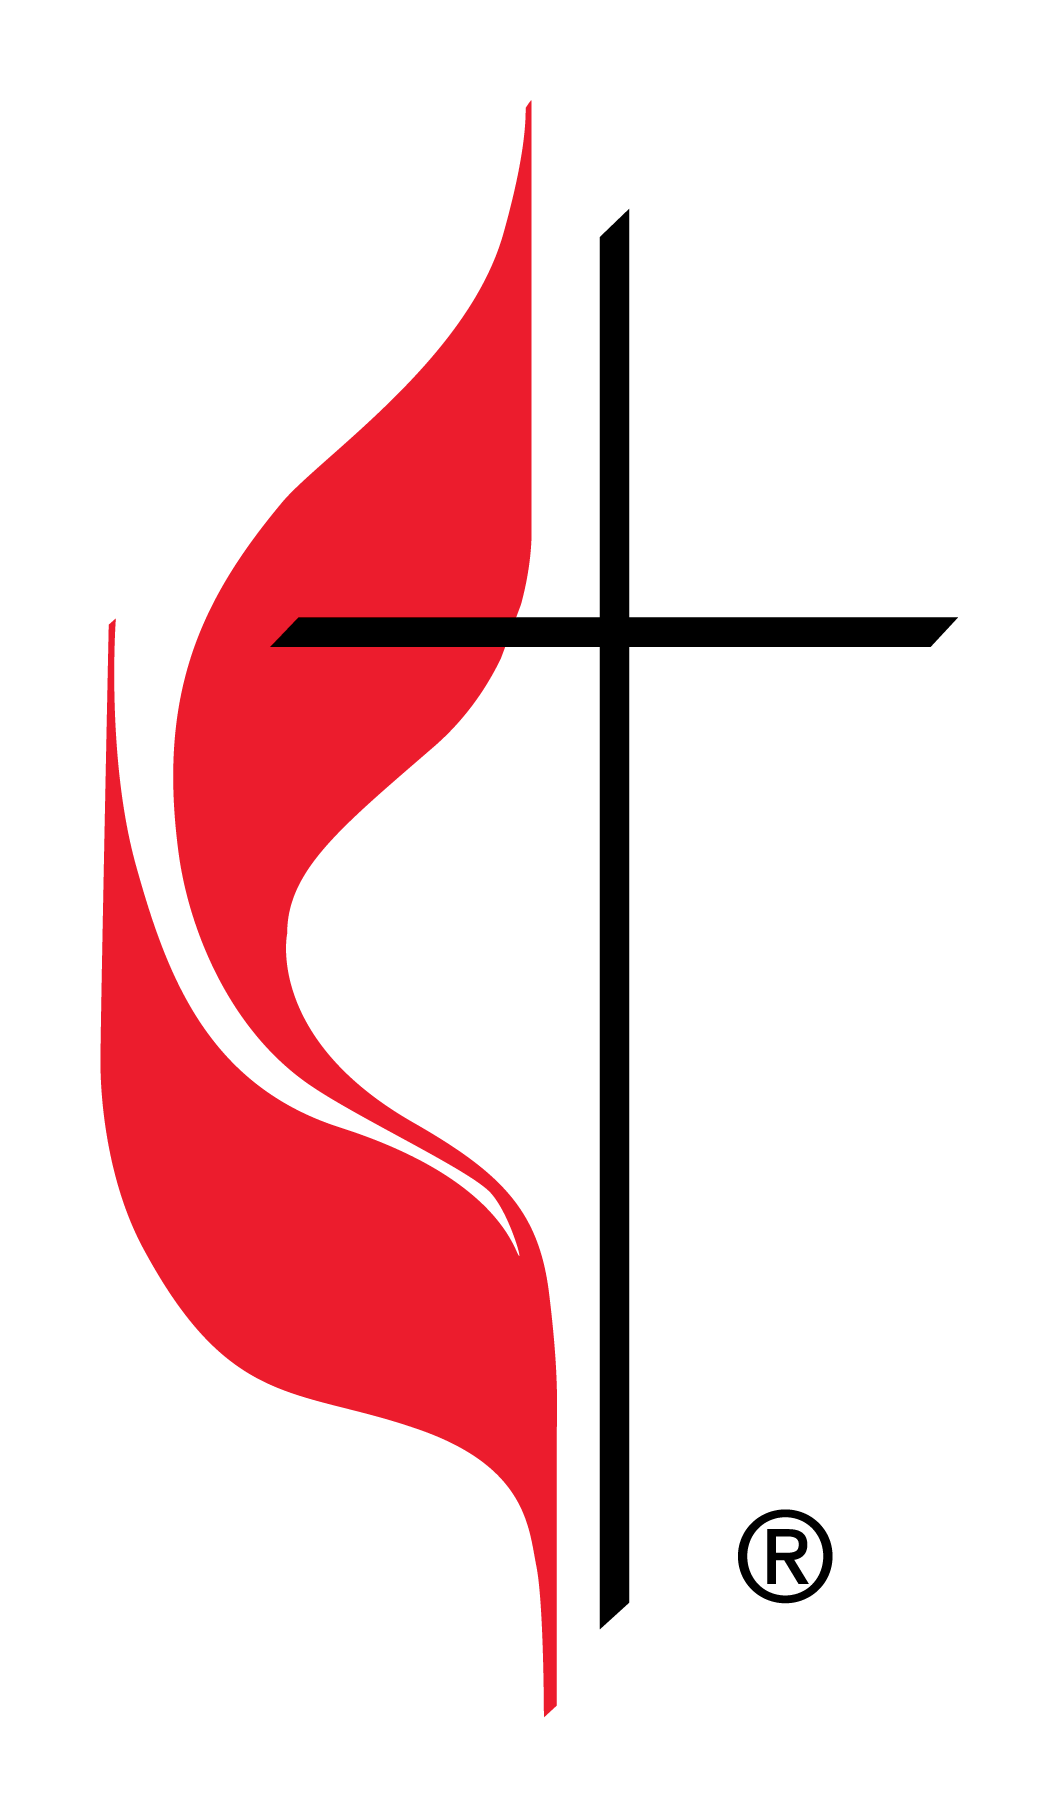 cross-and-flame-color-1058x1818.png